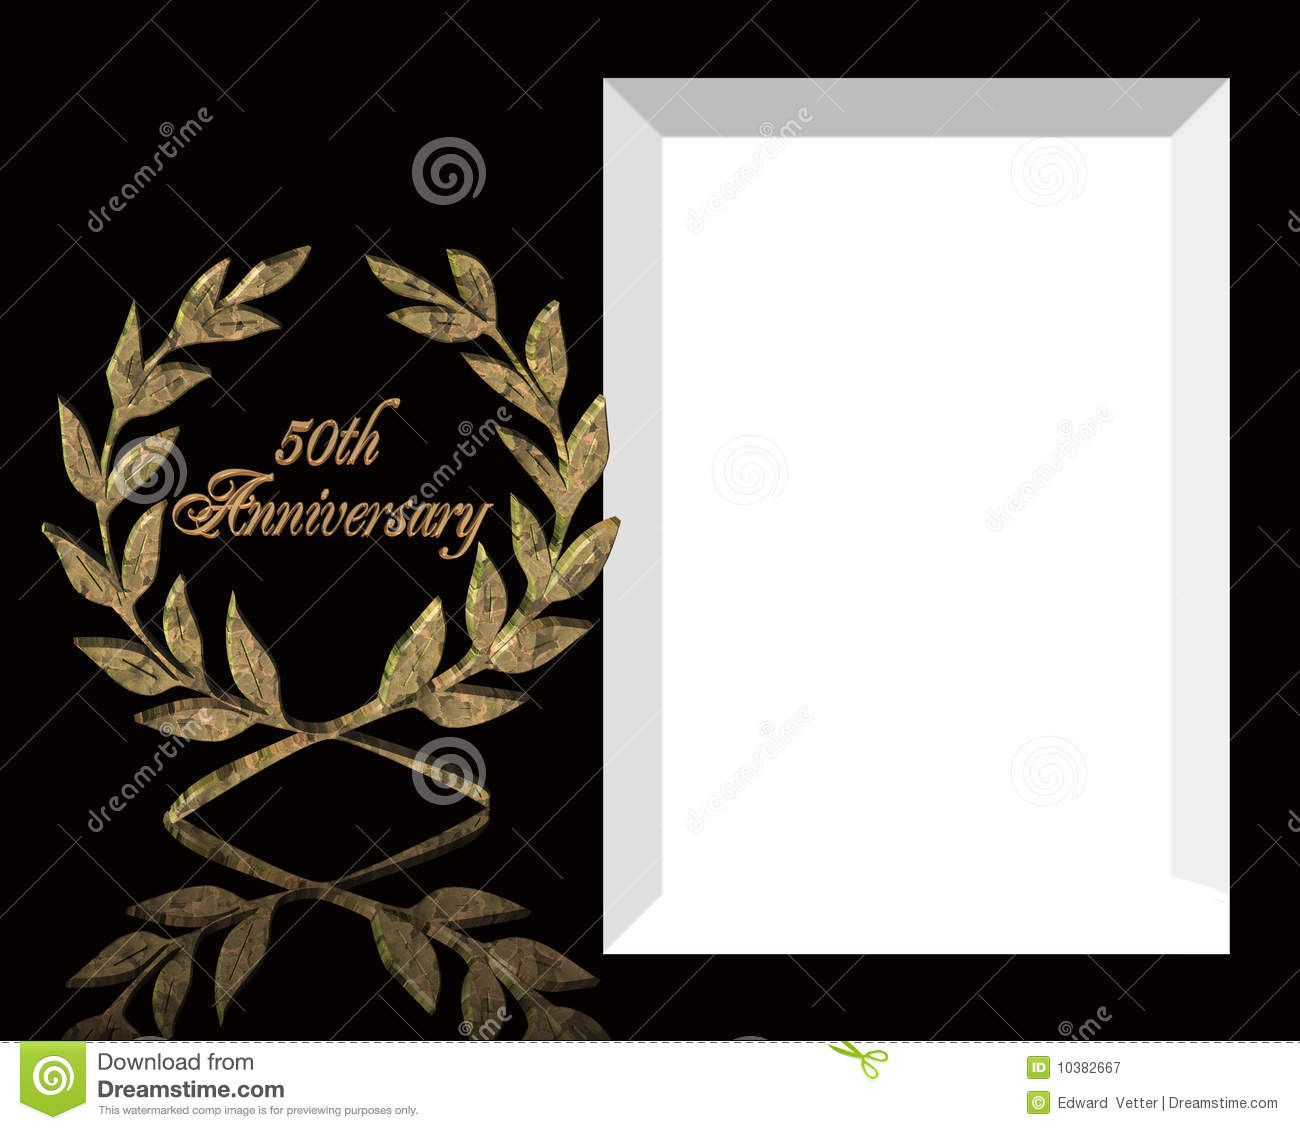 006 Archaicawful 50th Anniversary Invitation Template Free Highest Clarity  Download Golden WeddingFull